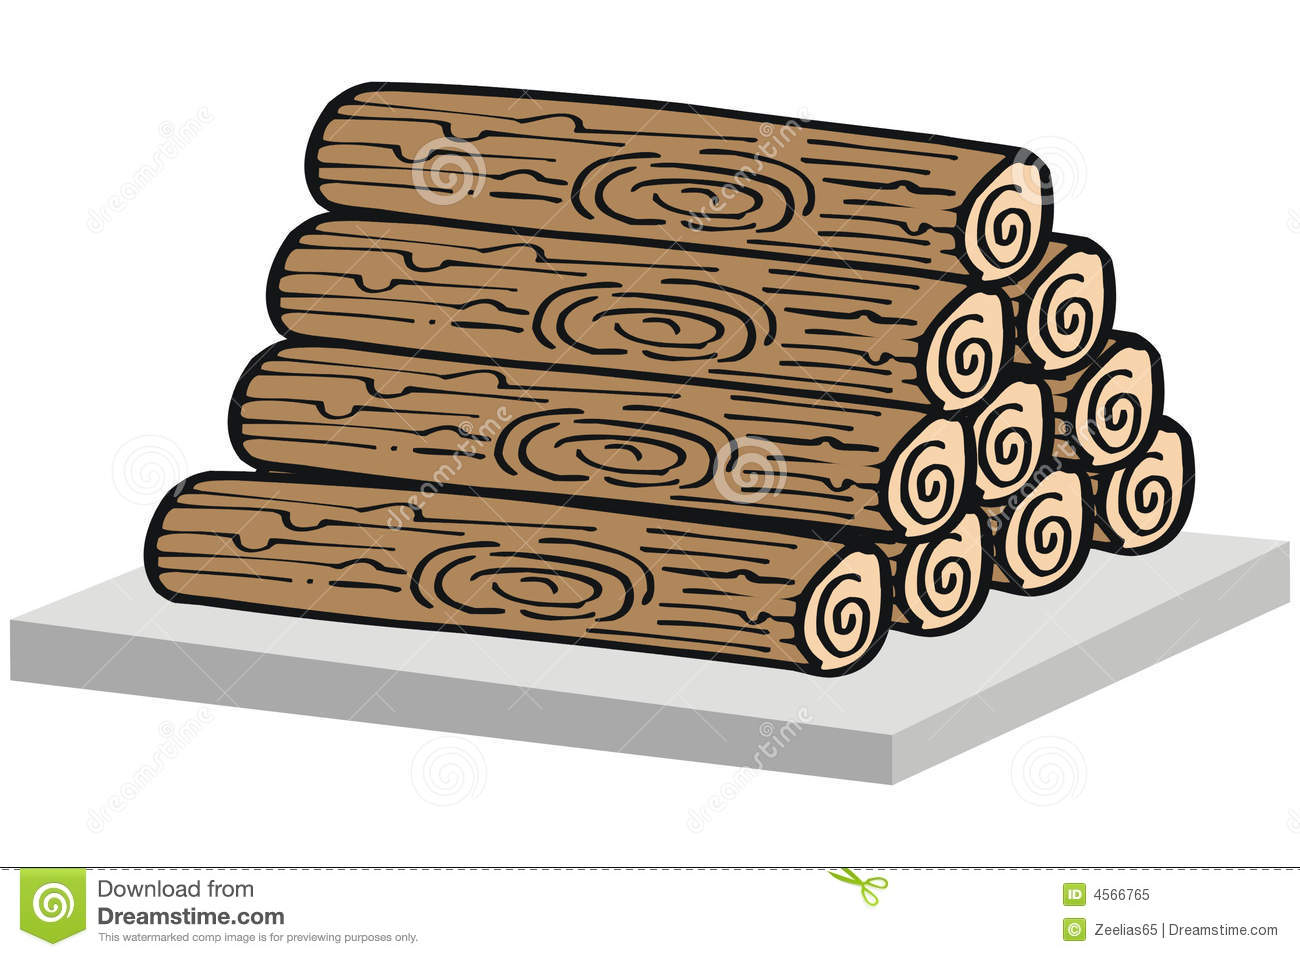 Displaying 20  Images For   Pile Of Logs Clipart